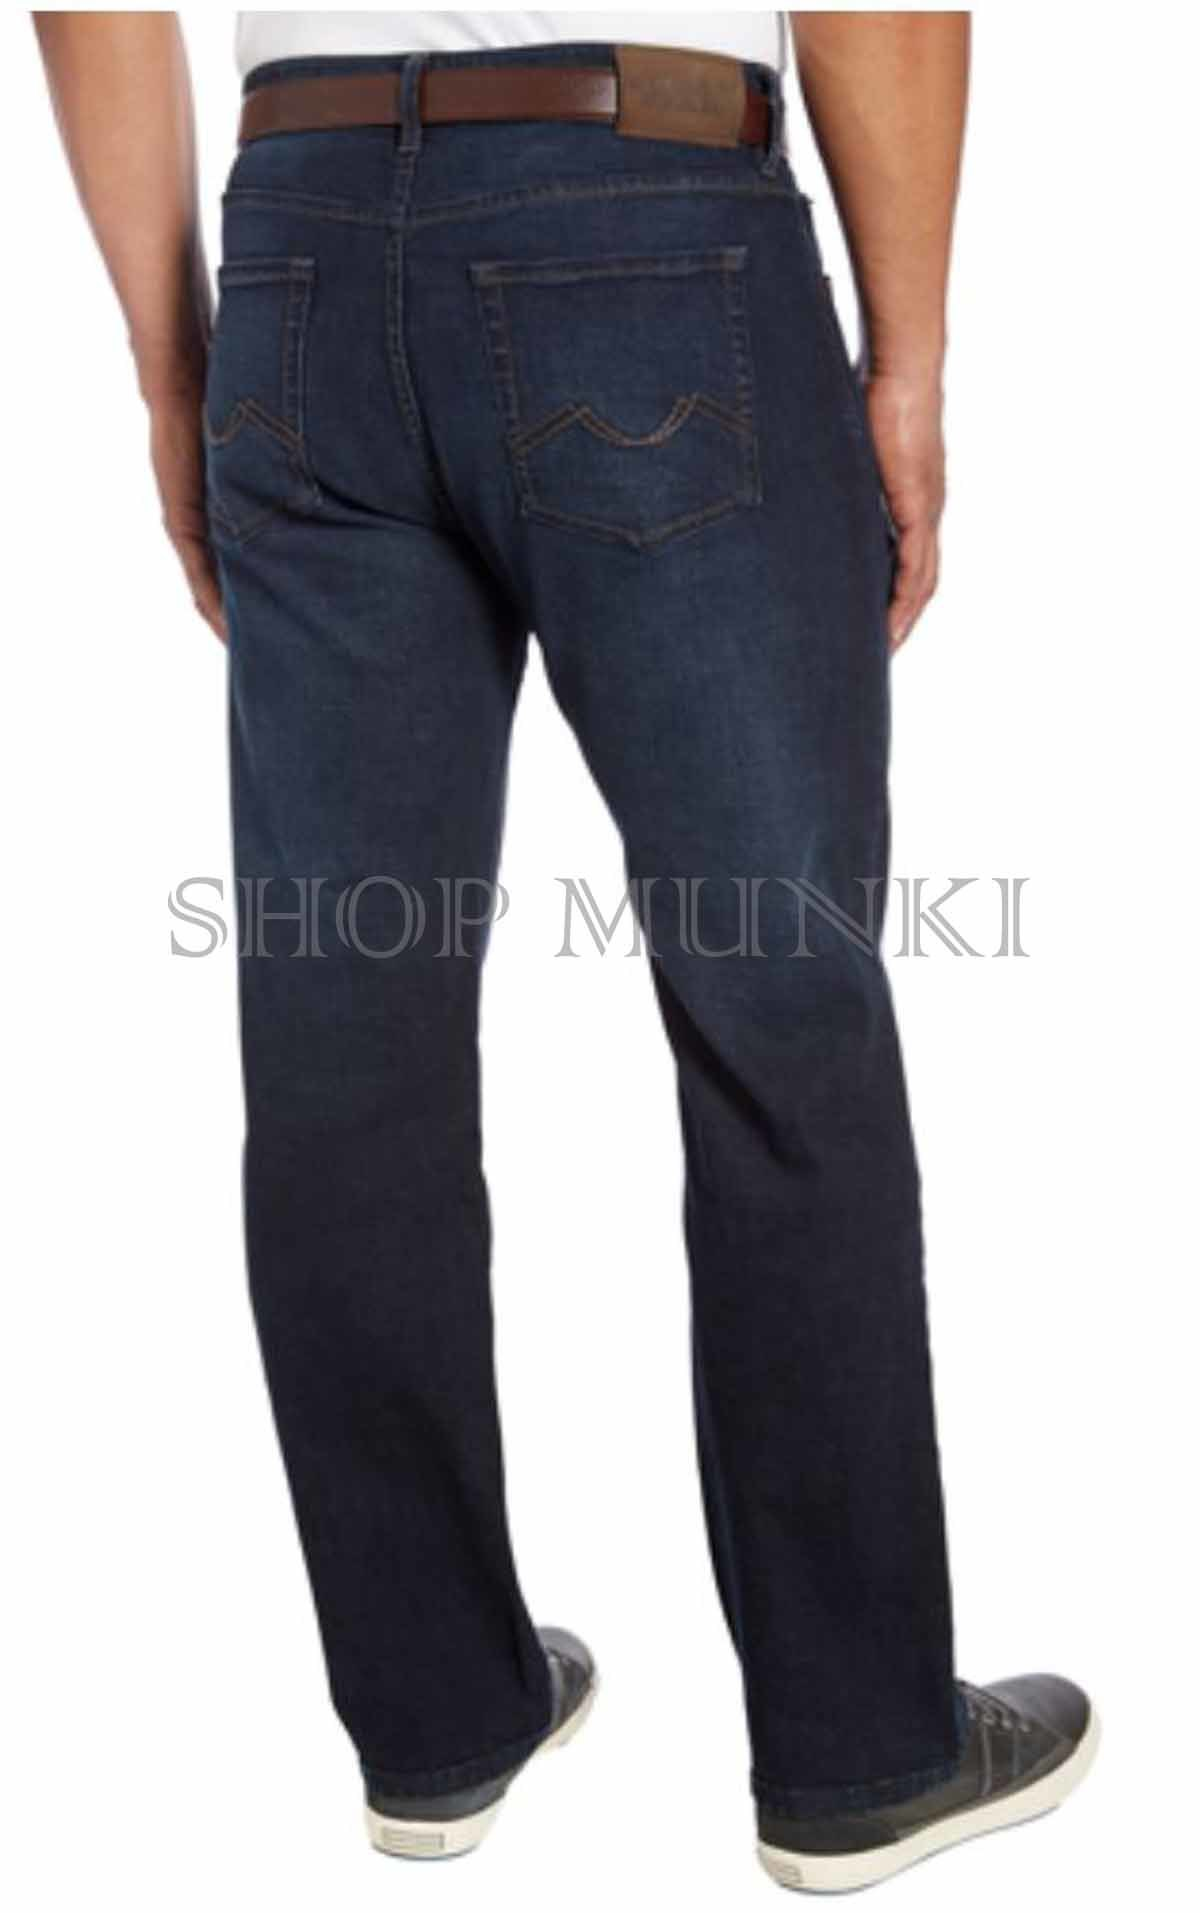 Mens Urban Star Jeans Wear Pants Stretch Relaxed Fit Black 34 X 30 ...